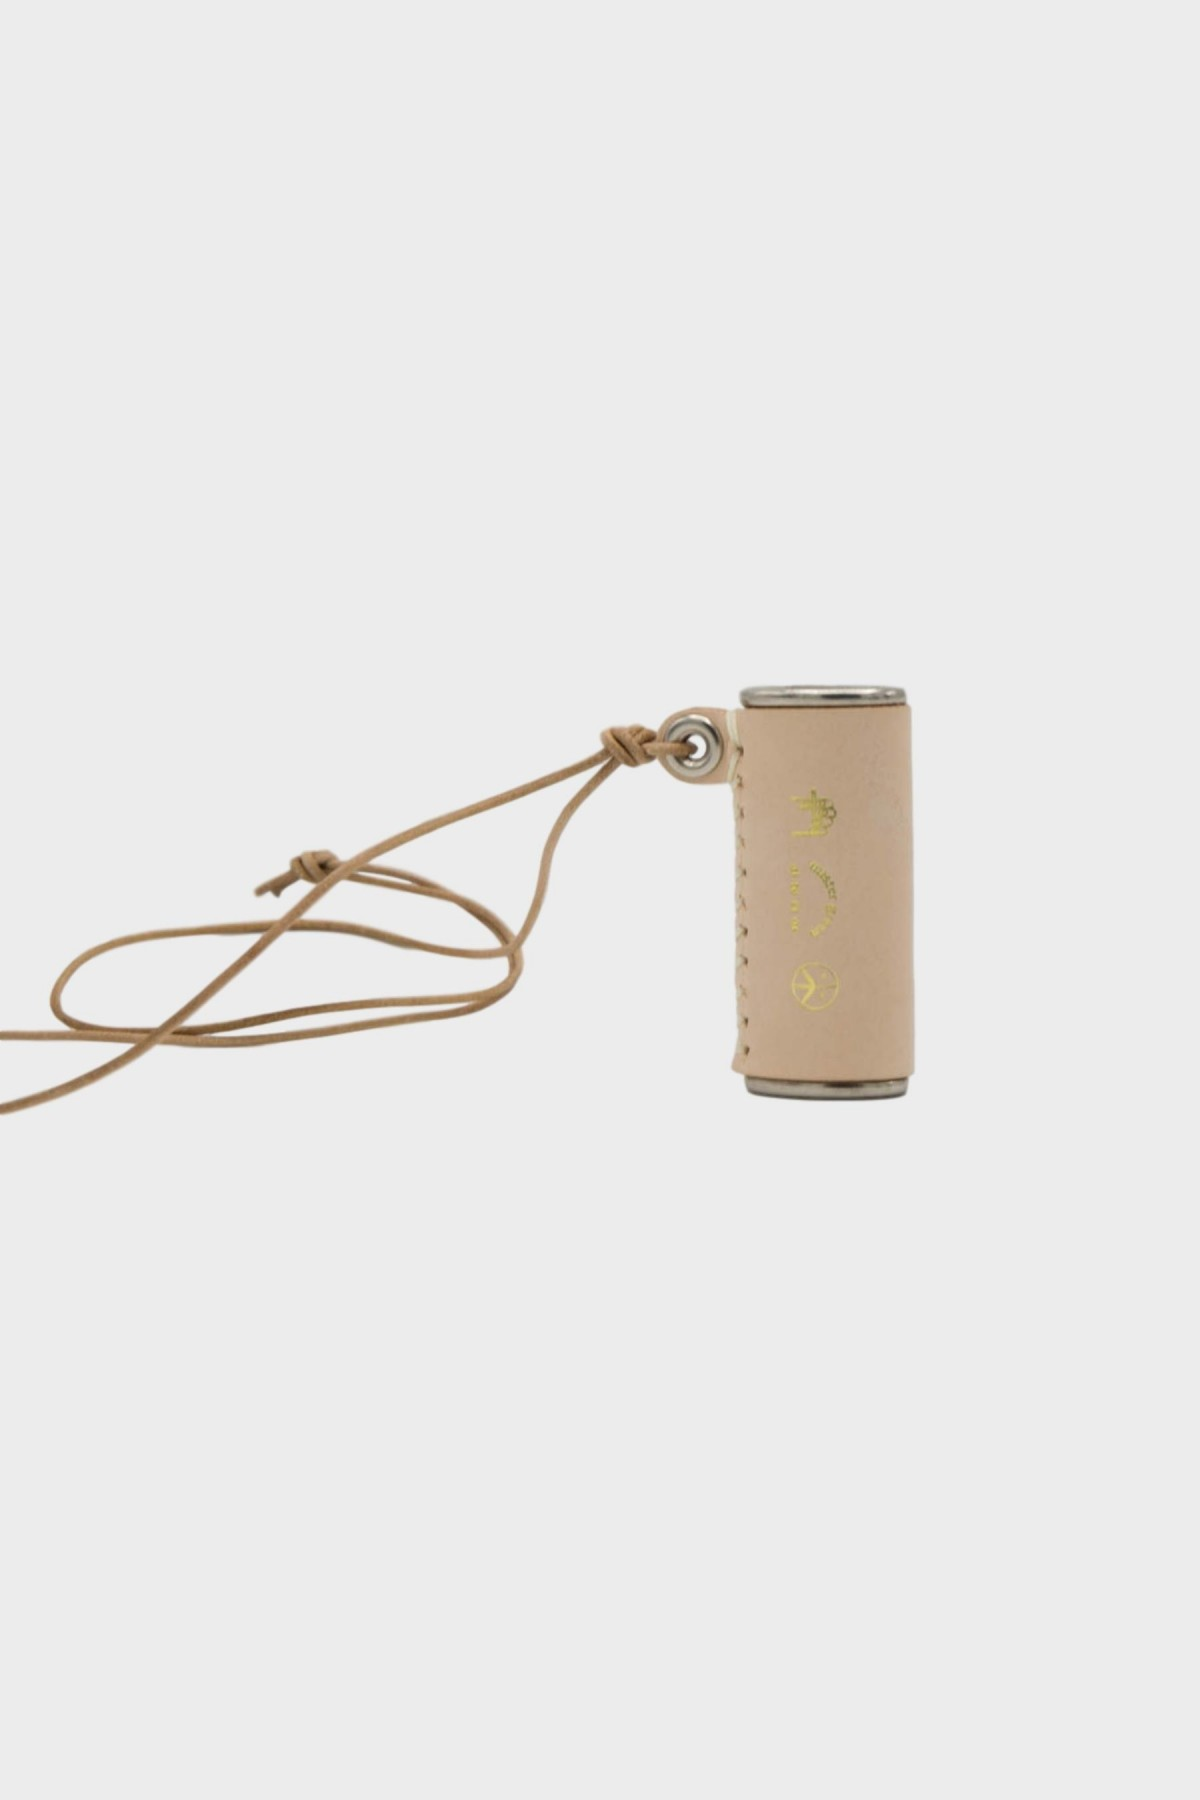 Mister Green Necklace Lighter in Natural Leather